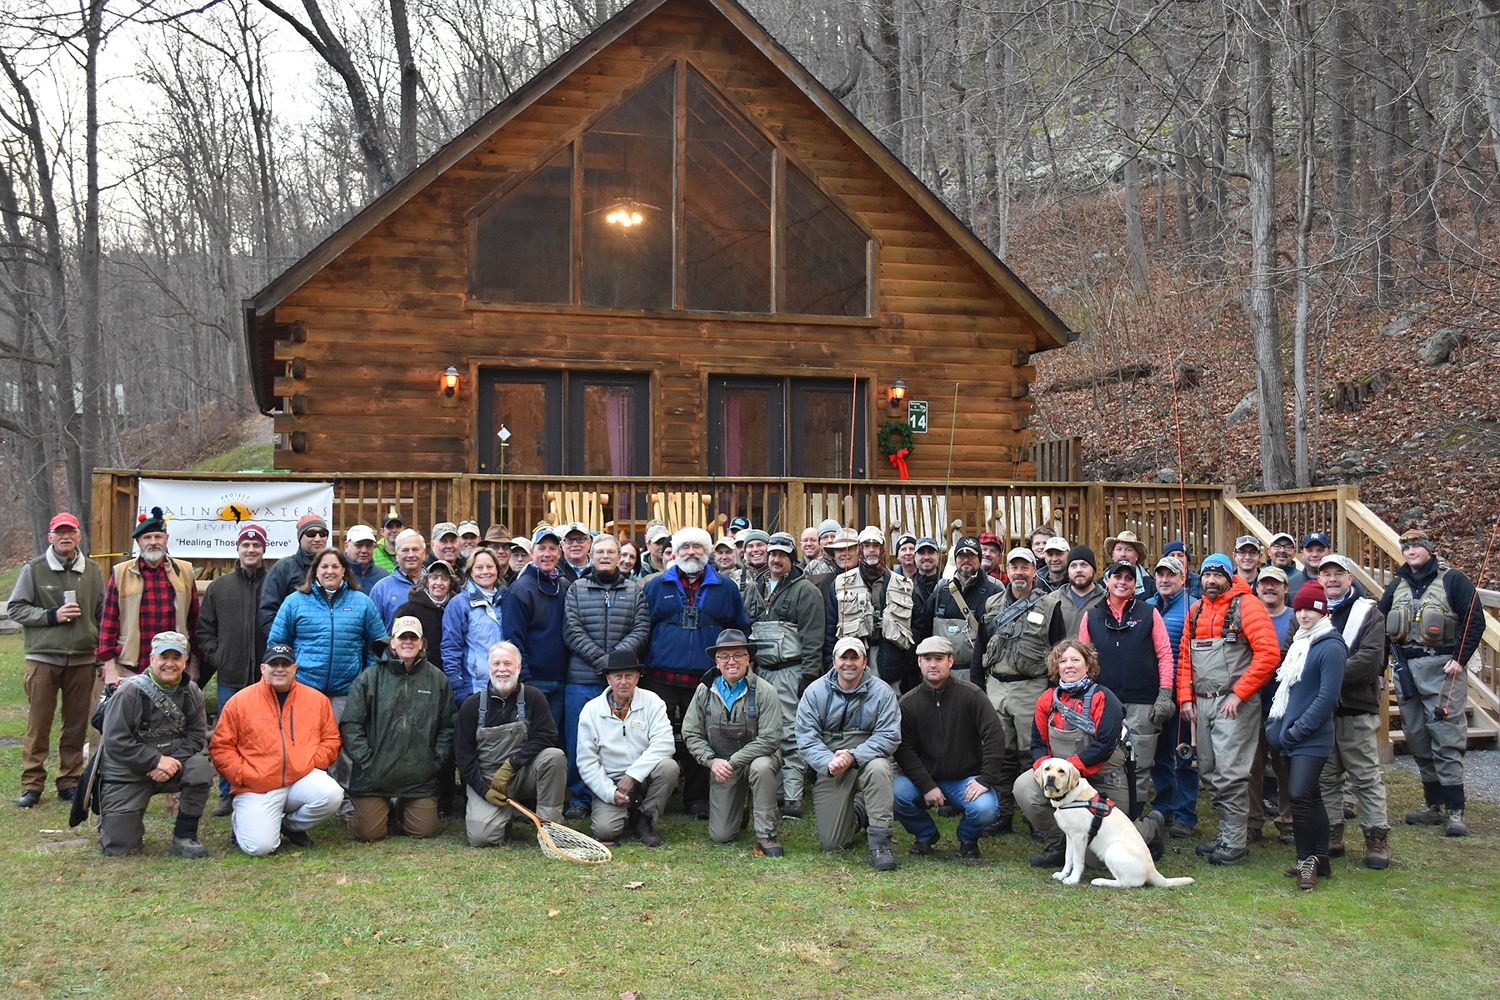 More than 70 veterans, volunteers and support staff attended the Sixth Annual Project Healing Waters Fly Fishing (PHWFF) Fly Fest Dec. 2-4 at Harman's Luxury Log Cabins in Cabins, West Virginia. The event was hosted by the PHWFF Quantico program and included more than 45 wounded warriors from seven different PHWFF programs. (photo by Taylor Laksbergs)